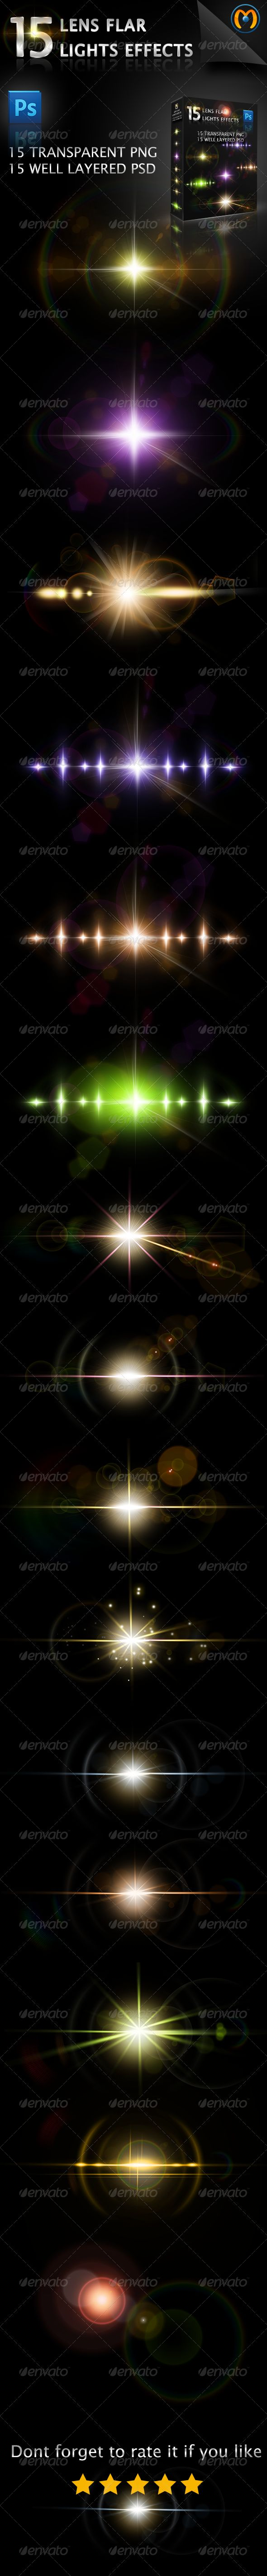 15 Lens Flares V.1 - #Decorative Graphics Download here:  https://graphicriver.net/item/15-lens-flares-v1/5330487?ref=alena994